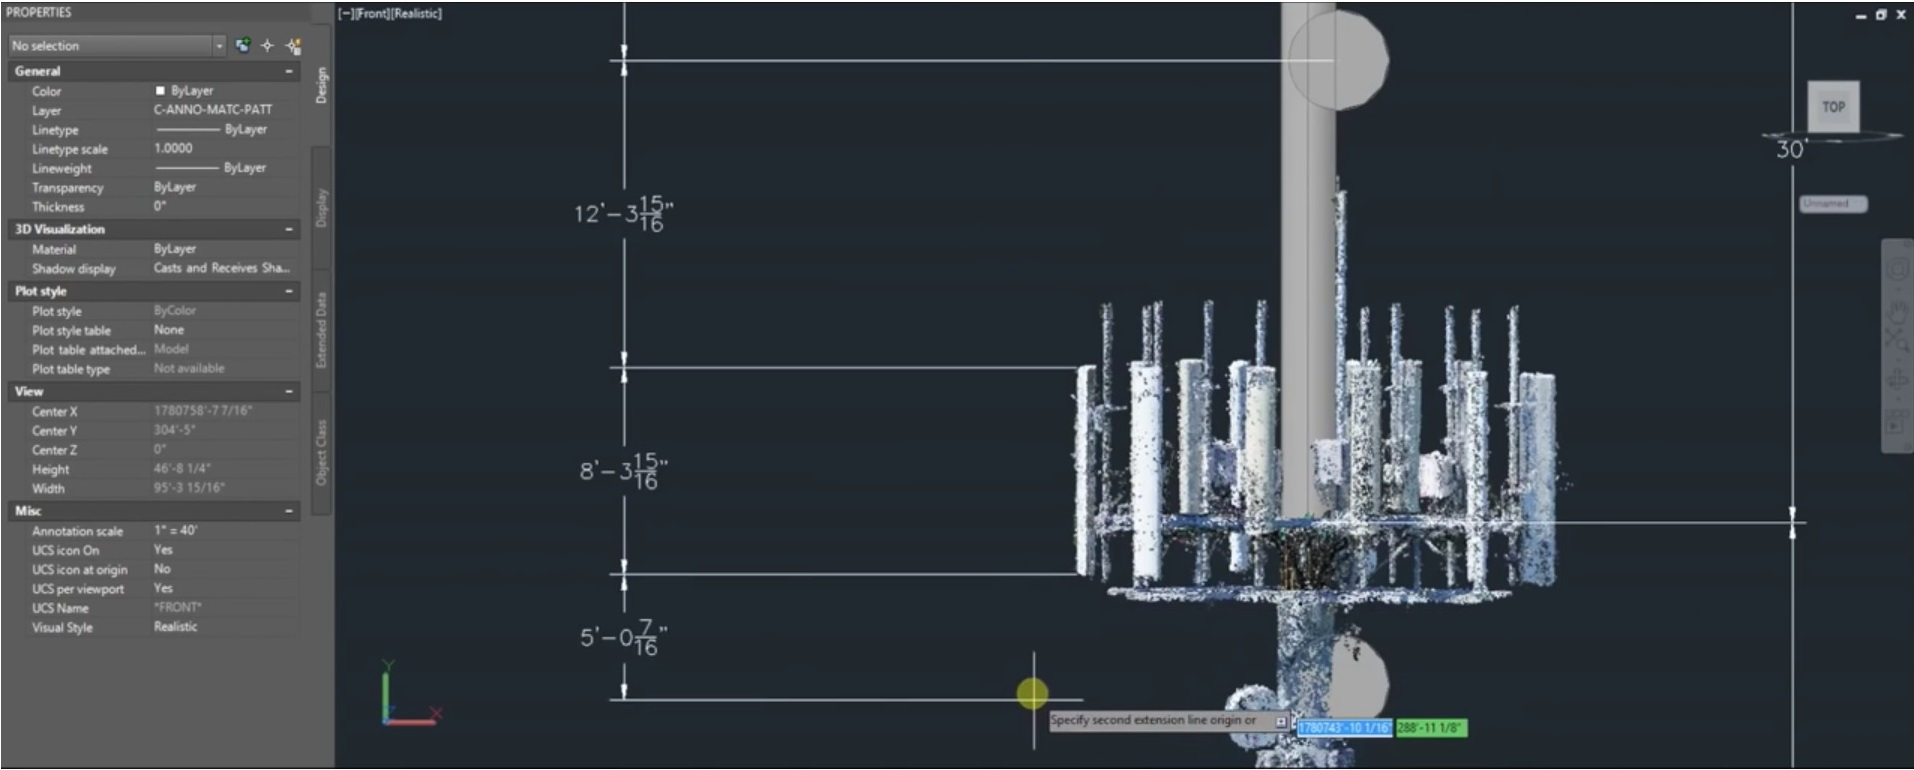 Cell tower measurements in CAD software